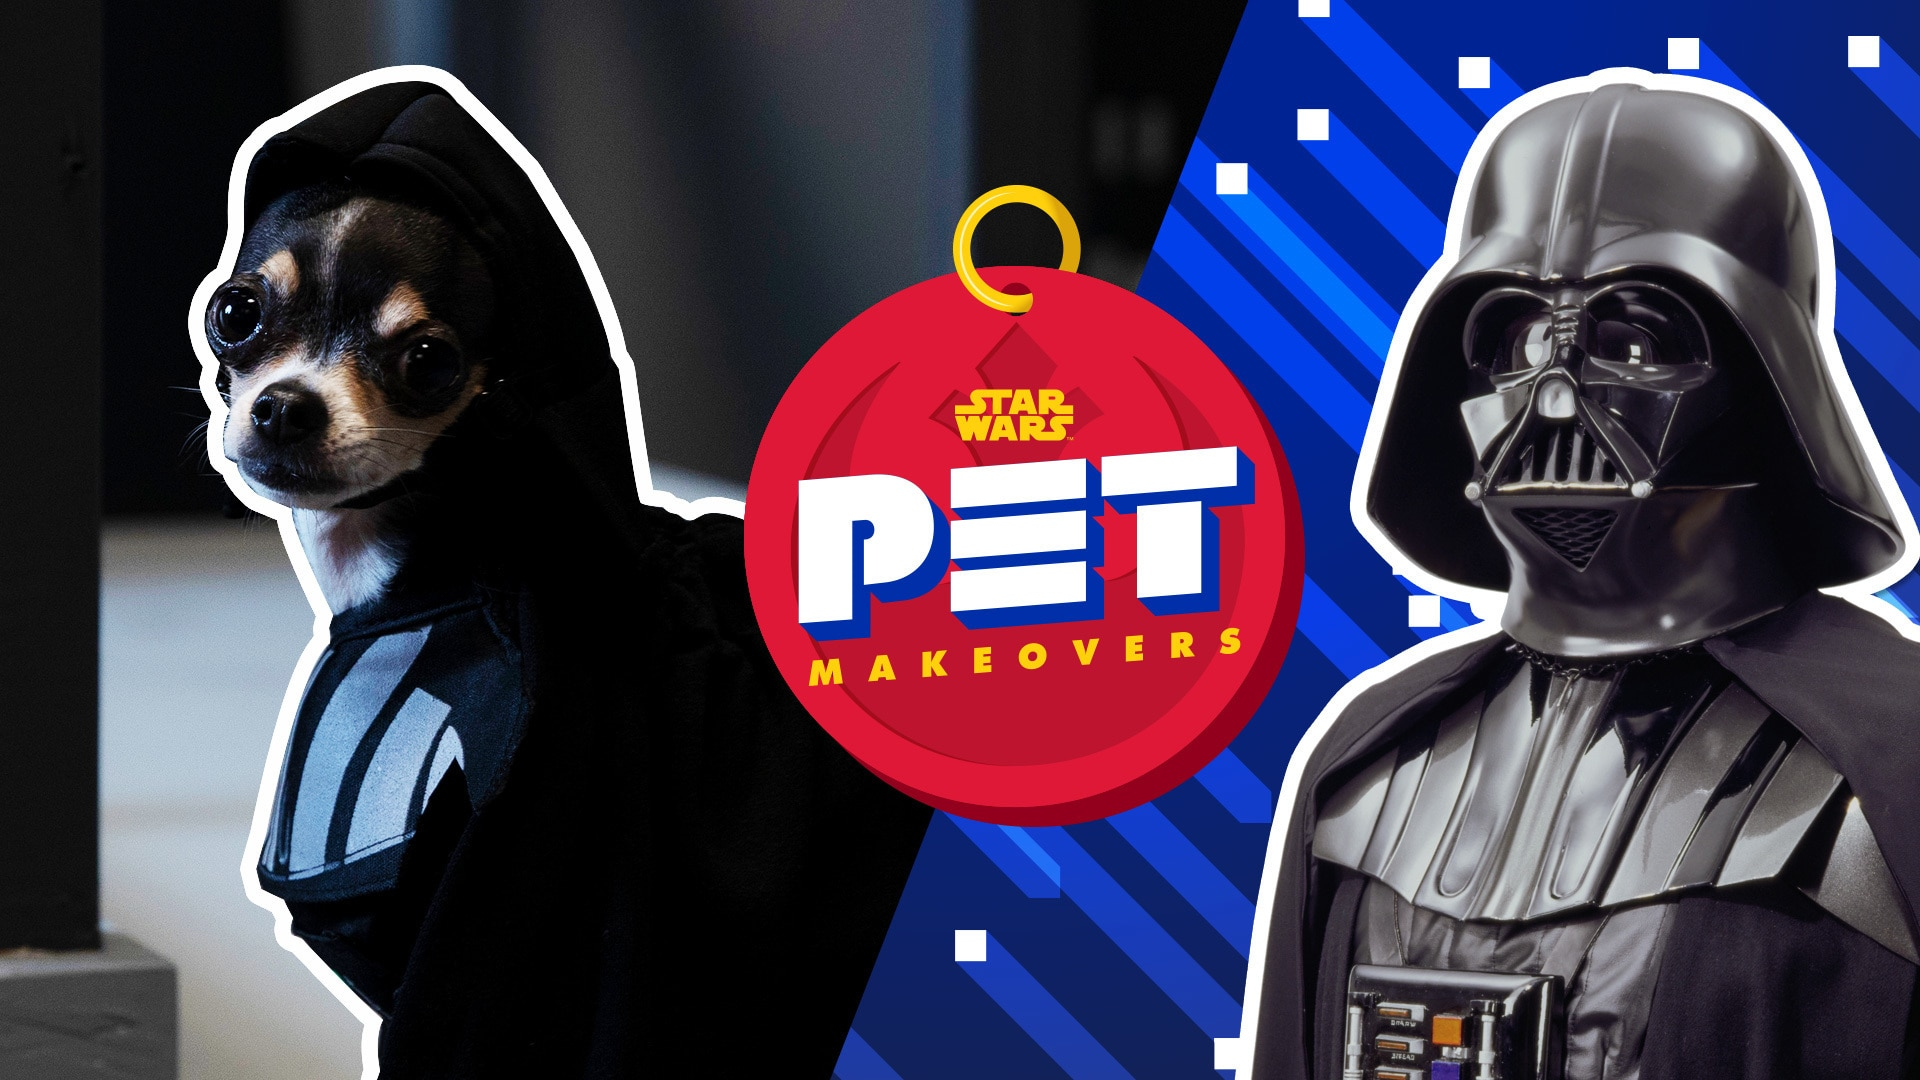 Turning a Chihuahua Into Darth Vader   Star Wars Pet Makeovers by Oh My Disney